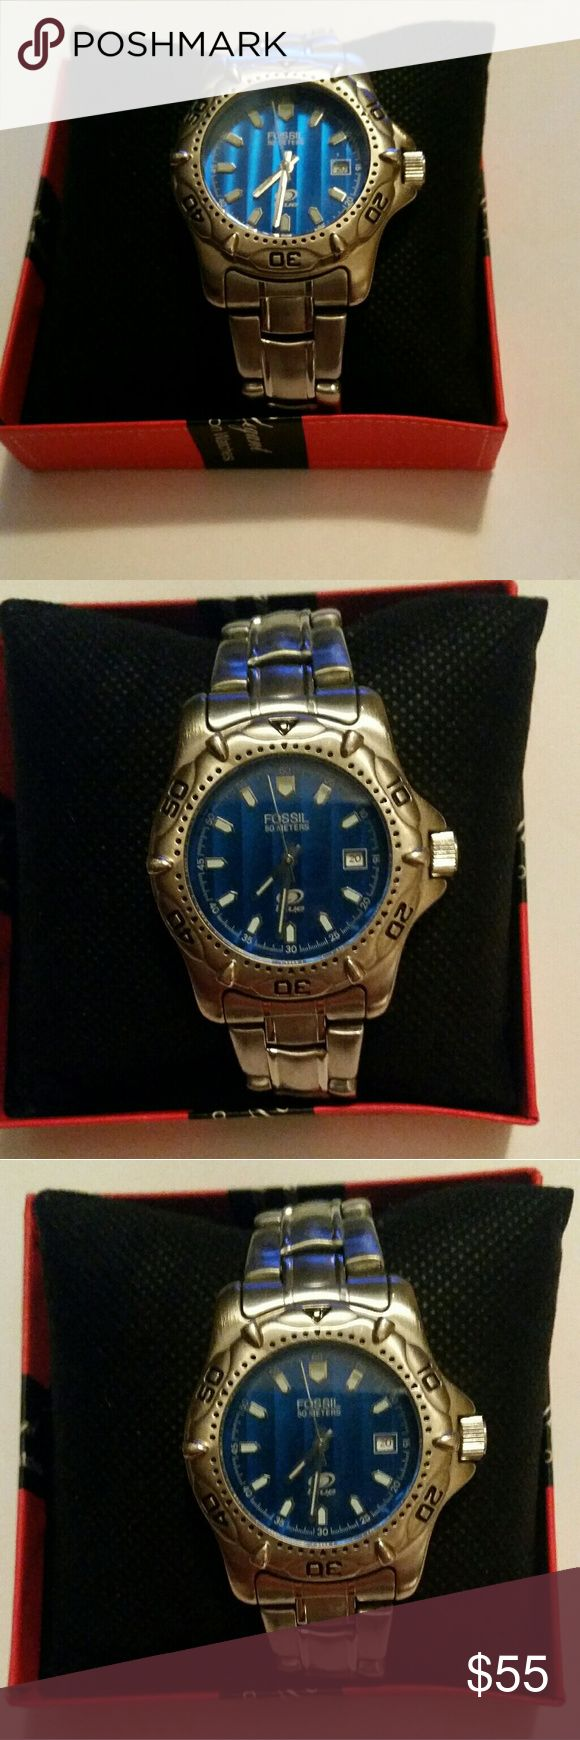 Mens Fossil Blue Watch AM-3196 Used Men's Fossil Blue Watch AM-3196 Silver Toned Blue Face 50Meters H20resis.  Band Material: Stainless steel  100% Authentic  Movement: Quartz, Battery  Style: Luxary Dress, or Casual  Display: analog Very well taken care of Fossil Accessories Watches